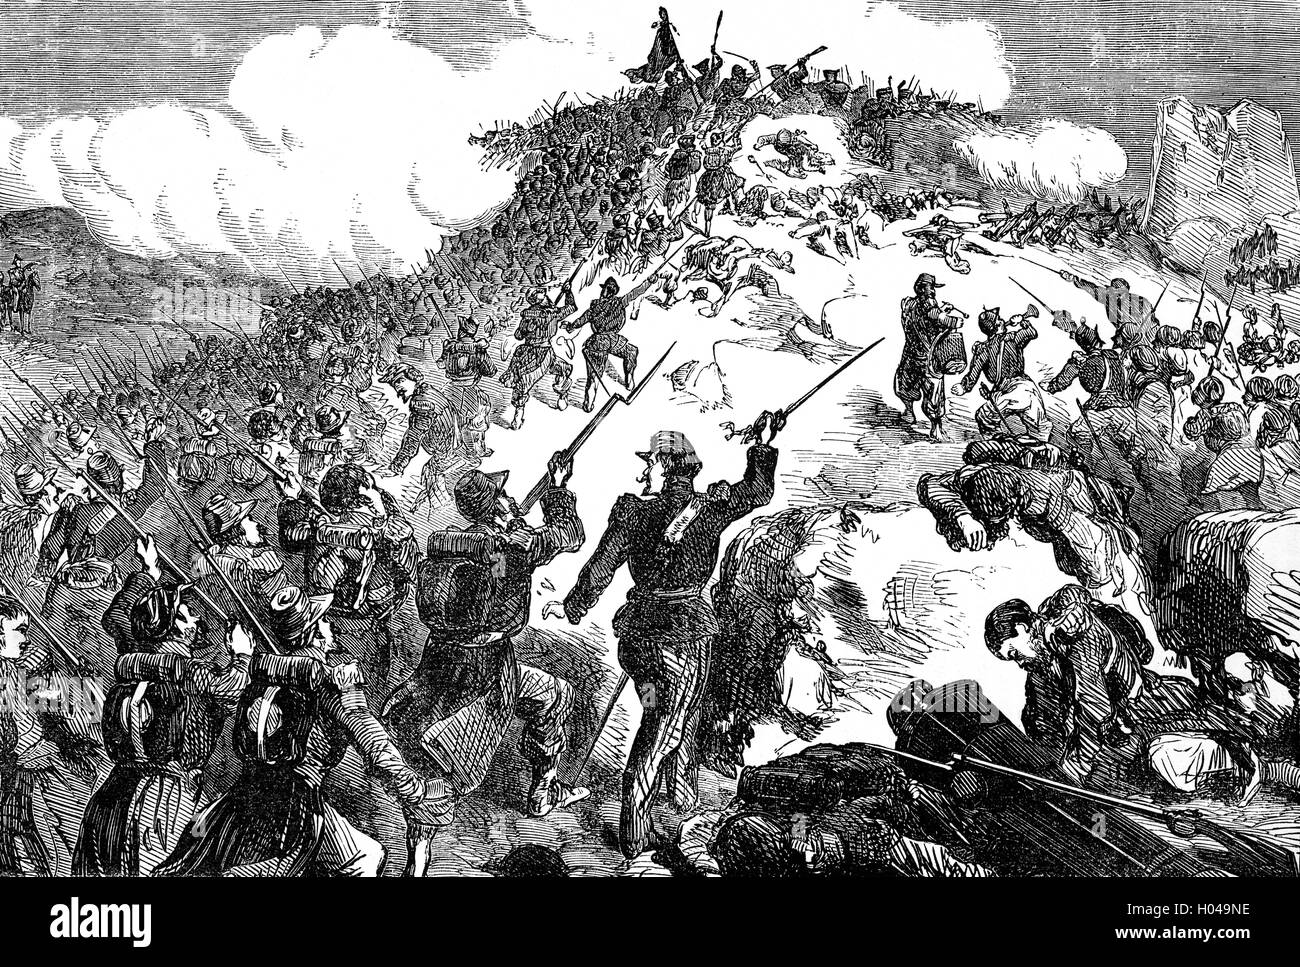 At the Siege of Sevastopol (1854–1855) during the Crimea War the French made three attempts to capture Mamelon, - Stock Image